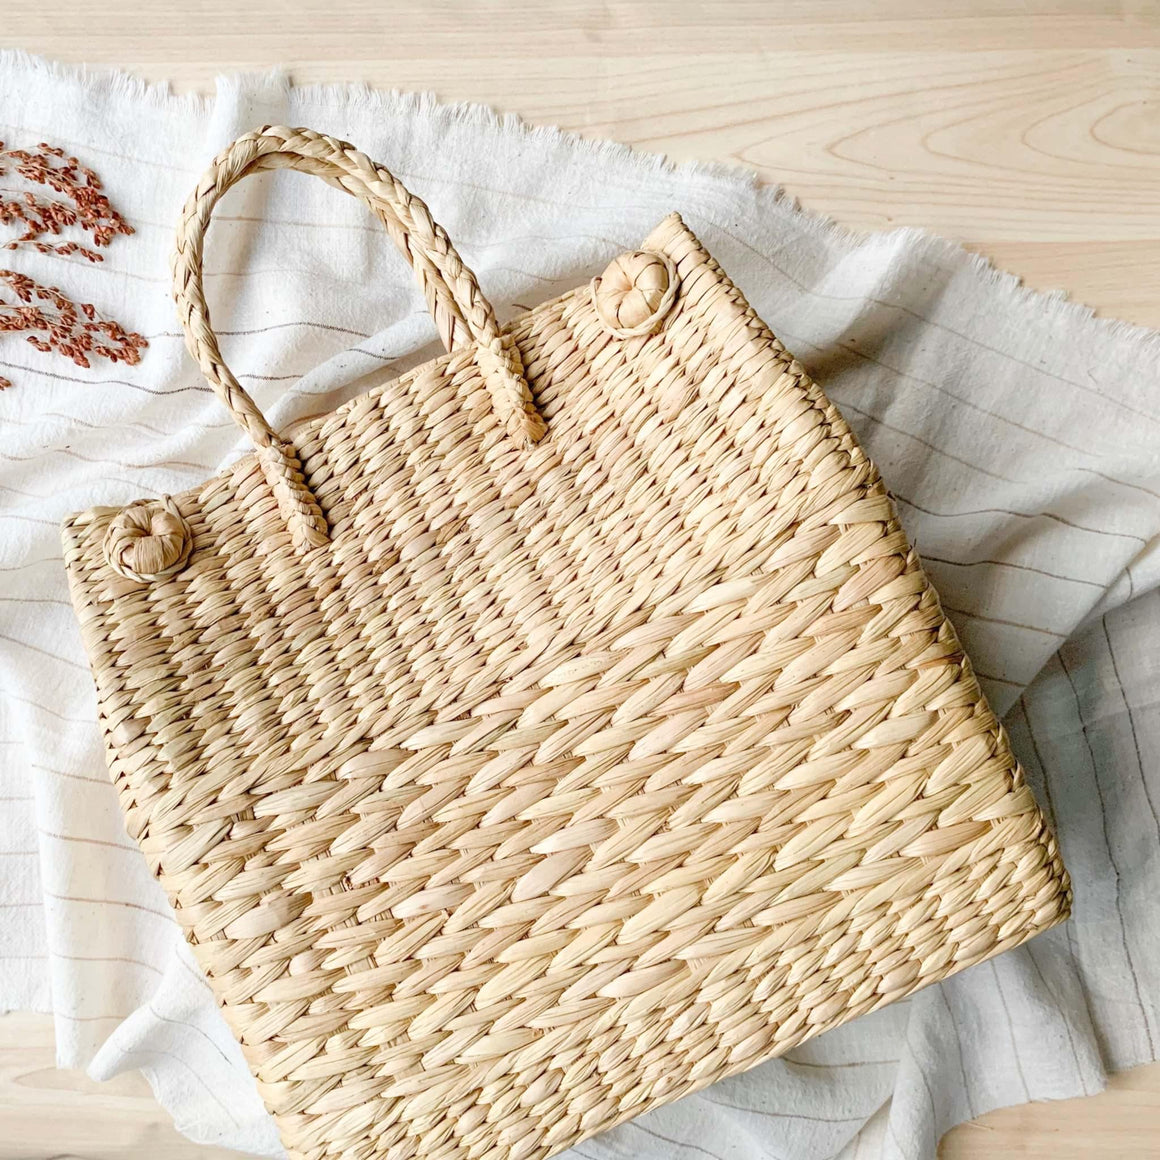 Watergrass Hamper Baskets in a light buttery golden hue. Handcrafted in 3 nesting sizes, great as a picnic hamper baskets. Crafted by Ginger Sparrow, a modern home decor brand.